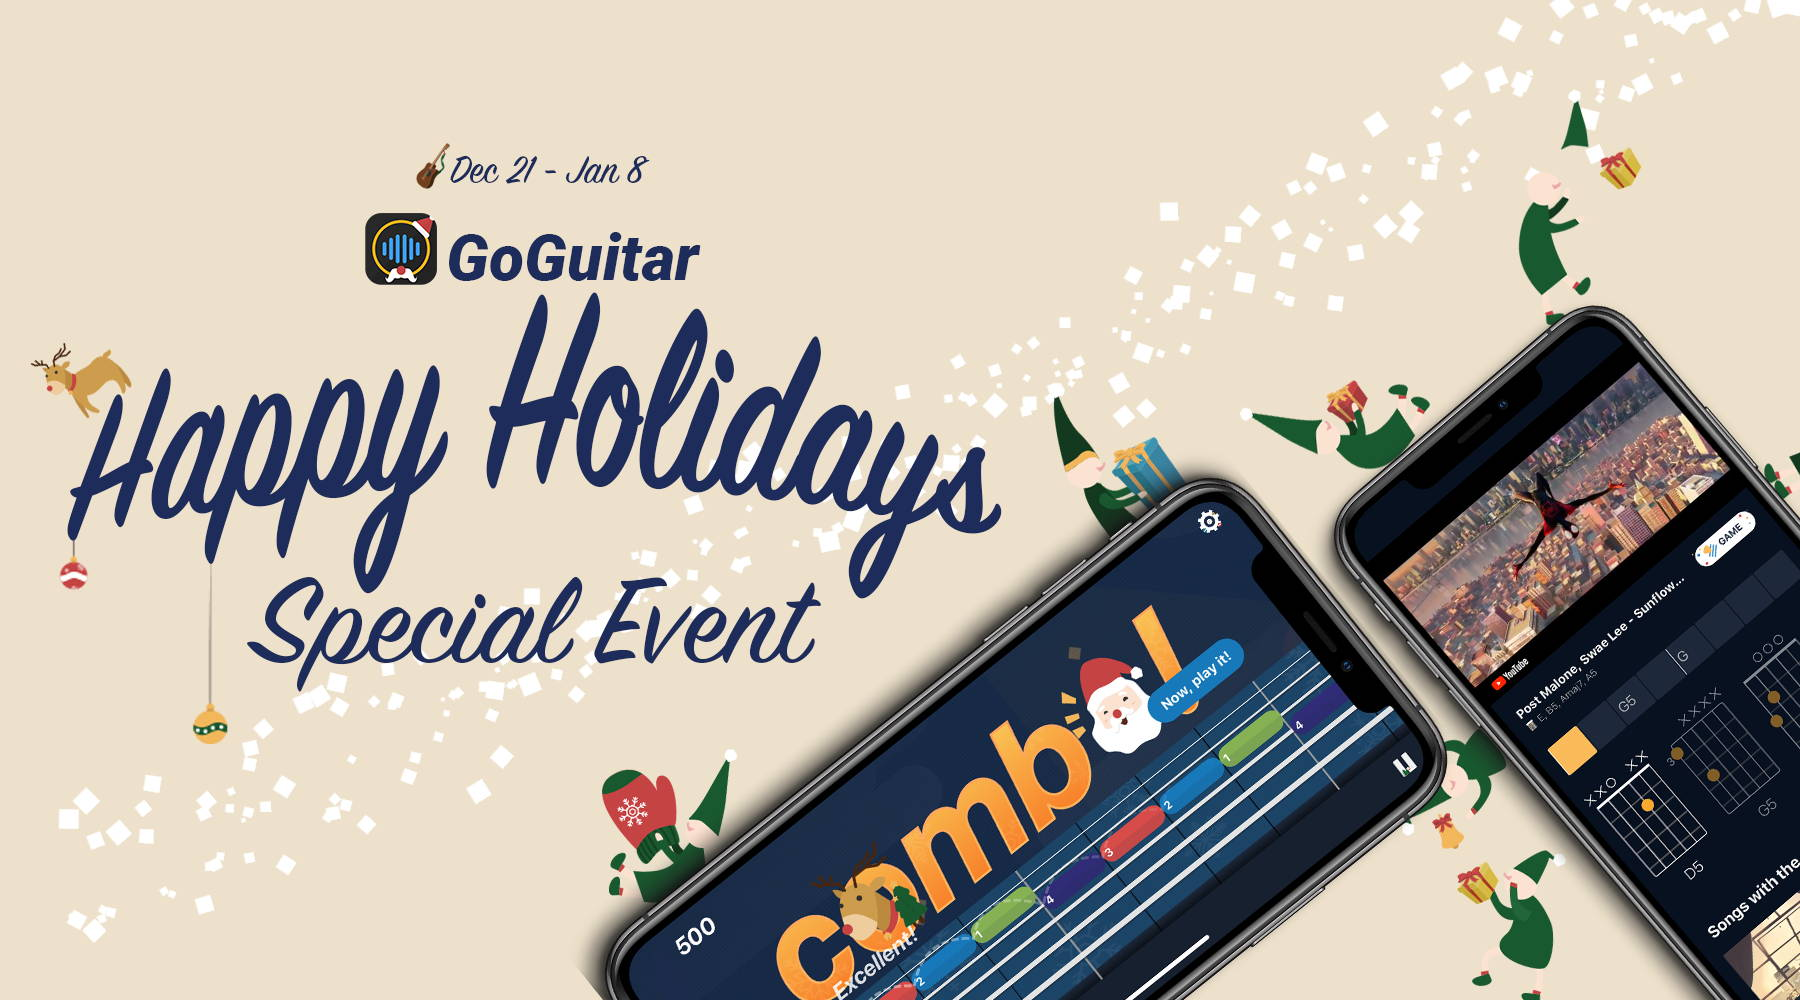 GoGuitar -  the smartest and most interesting app to learn and enjoy playing guitar. From beginners to accomplished players, everyone can easily learn to play any song you want or master new skills with hundreds of lessons and practicing games in GoGuitar.